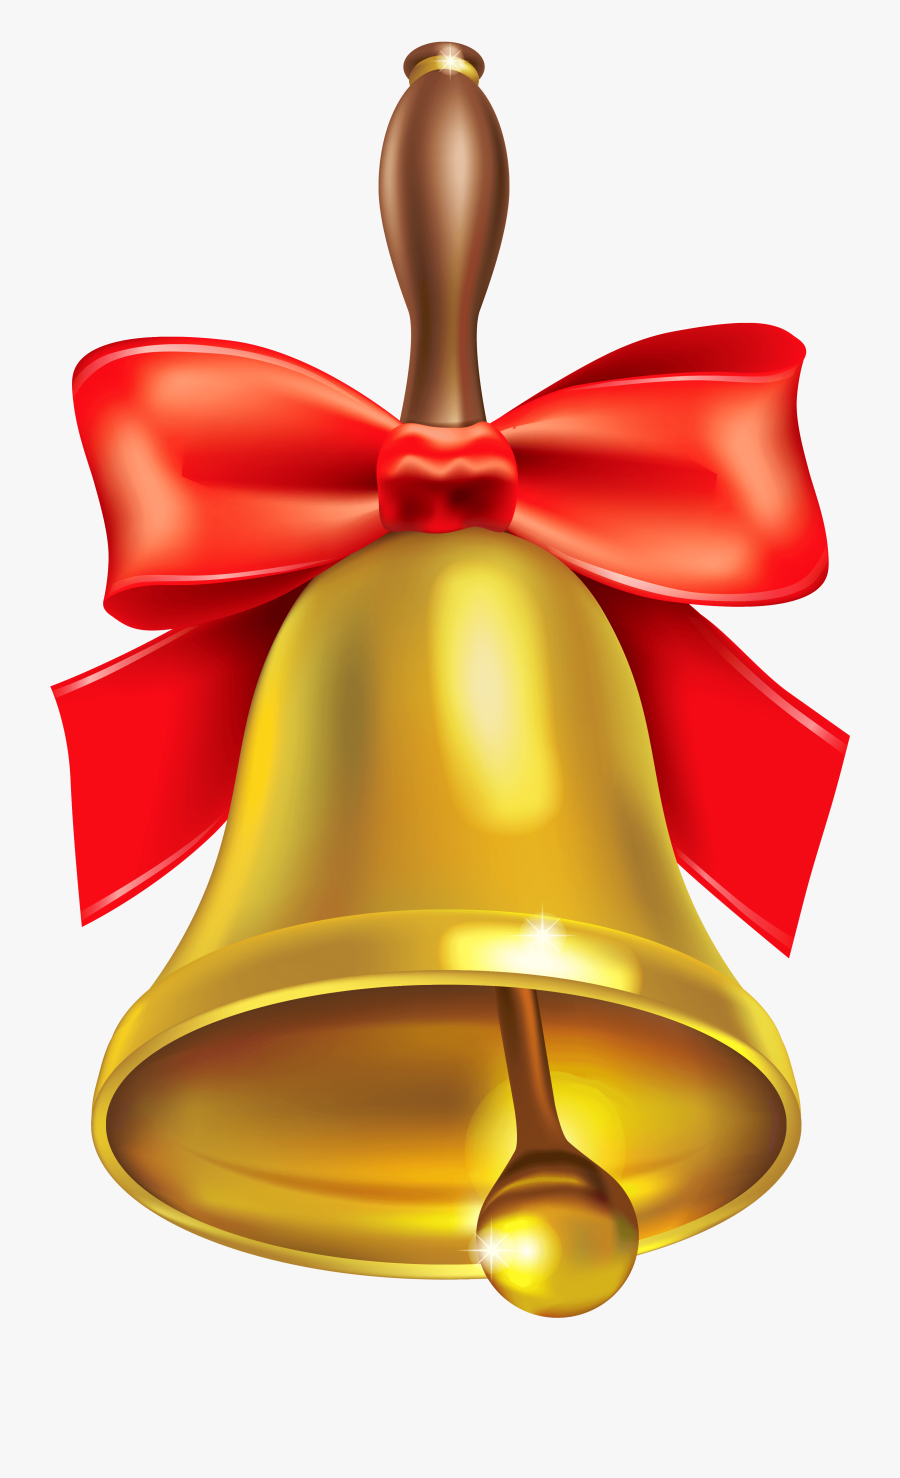 Bell Png Image - School Bell, Transparent Clipart